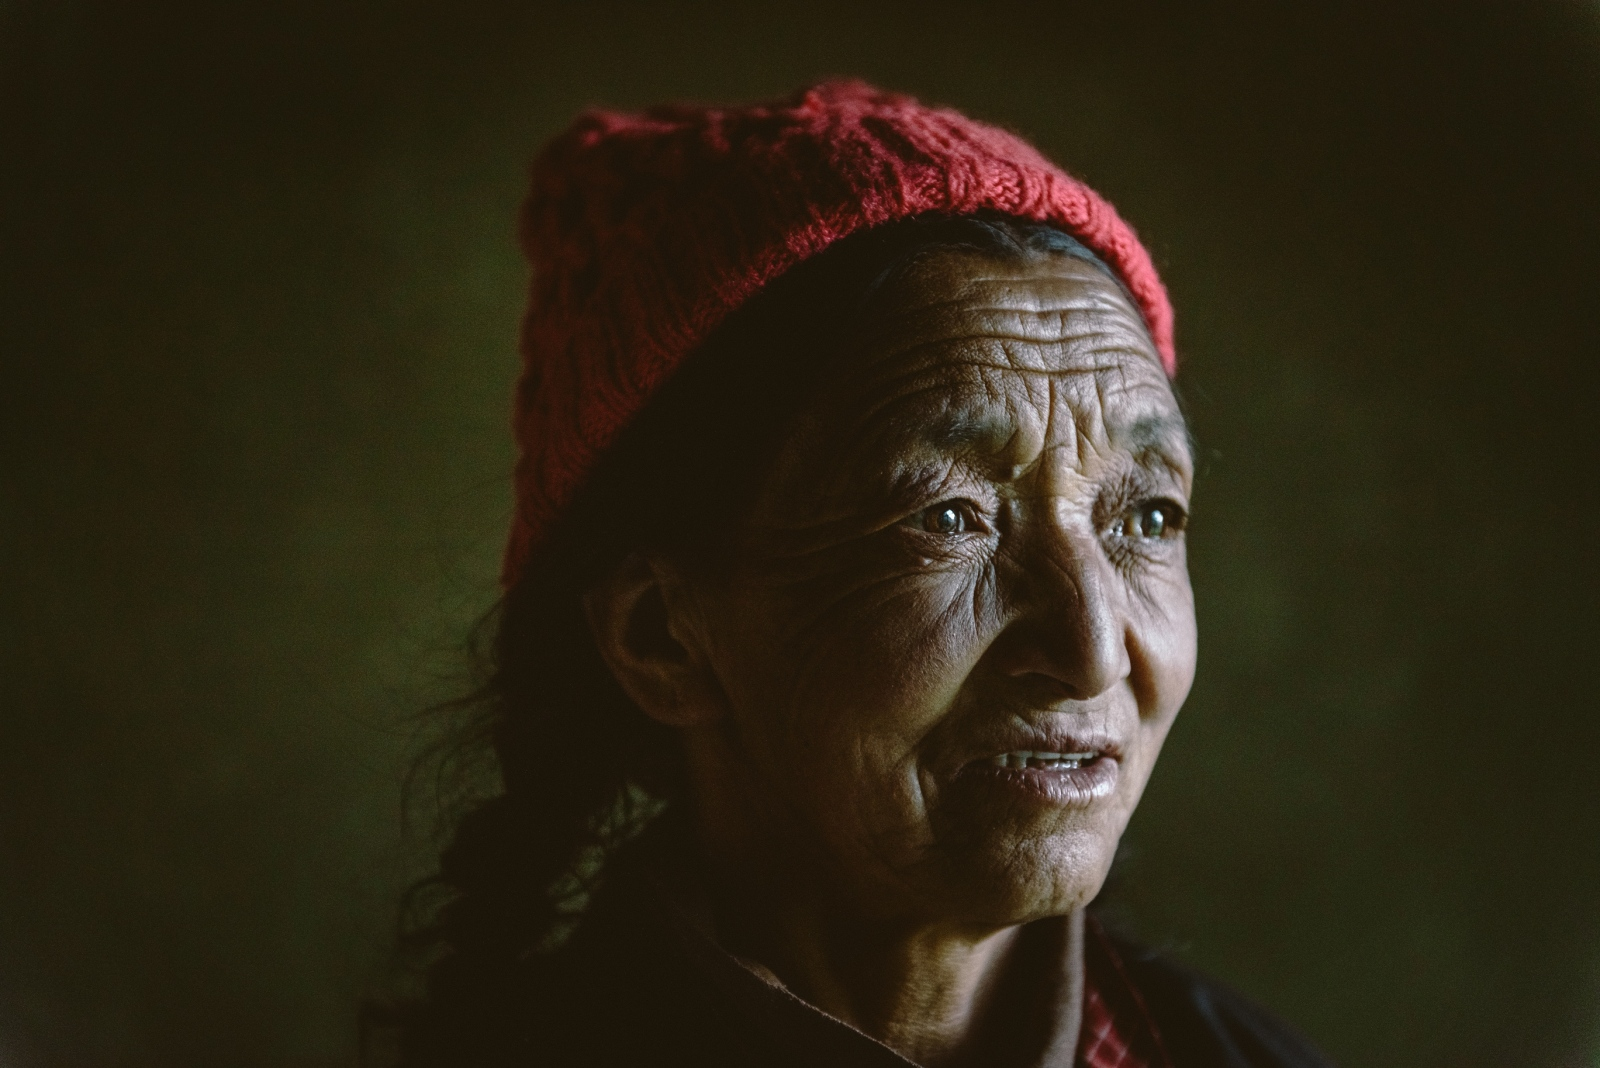 Tsering 'Dolker' Fomsapa, an elder Ladakhi woman of the remote mountain village, Domkhar Gongma, and witness to the 2010 'cloudburst' storm event that devastated the region of Ladakh, destroying entire villages and claiming entire families. Her family and her home were saved from disaster by virtue of being situated higher up on the mountain side whilst the destructive flash floods passed by just below.